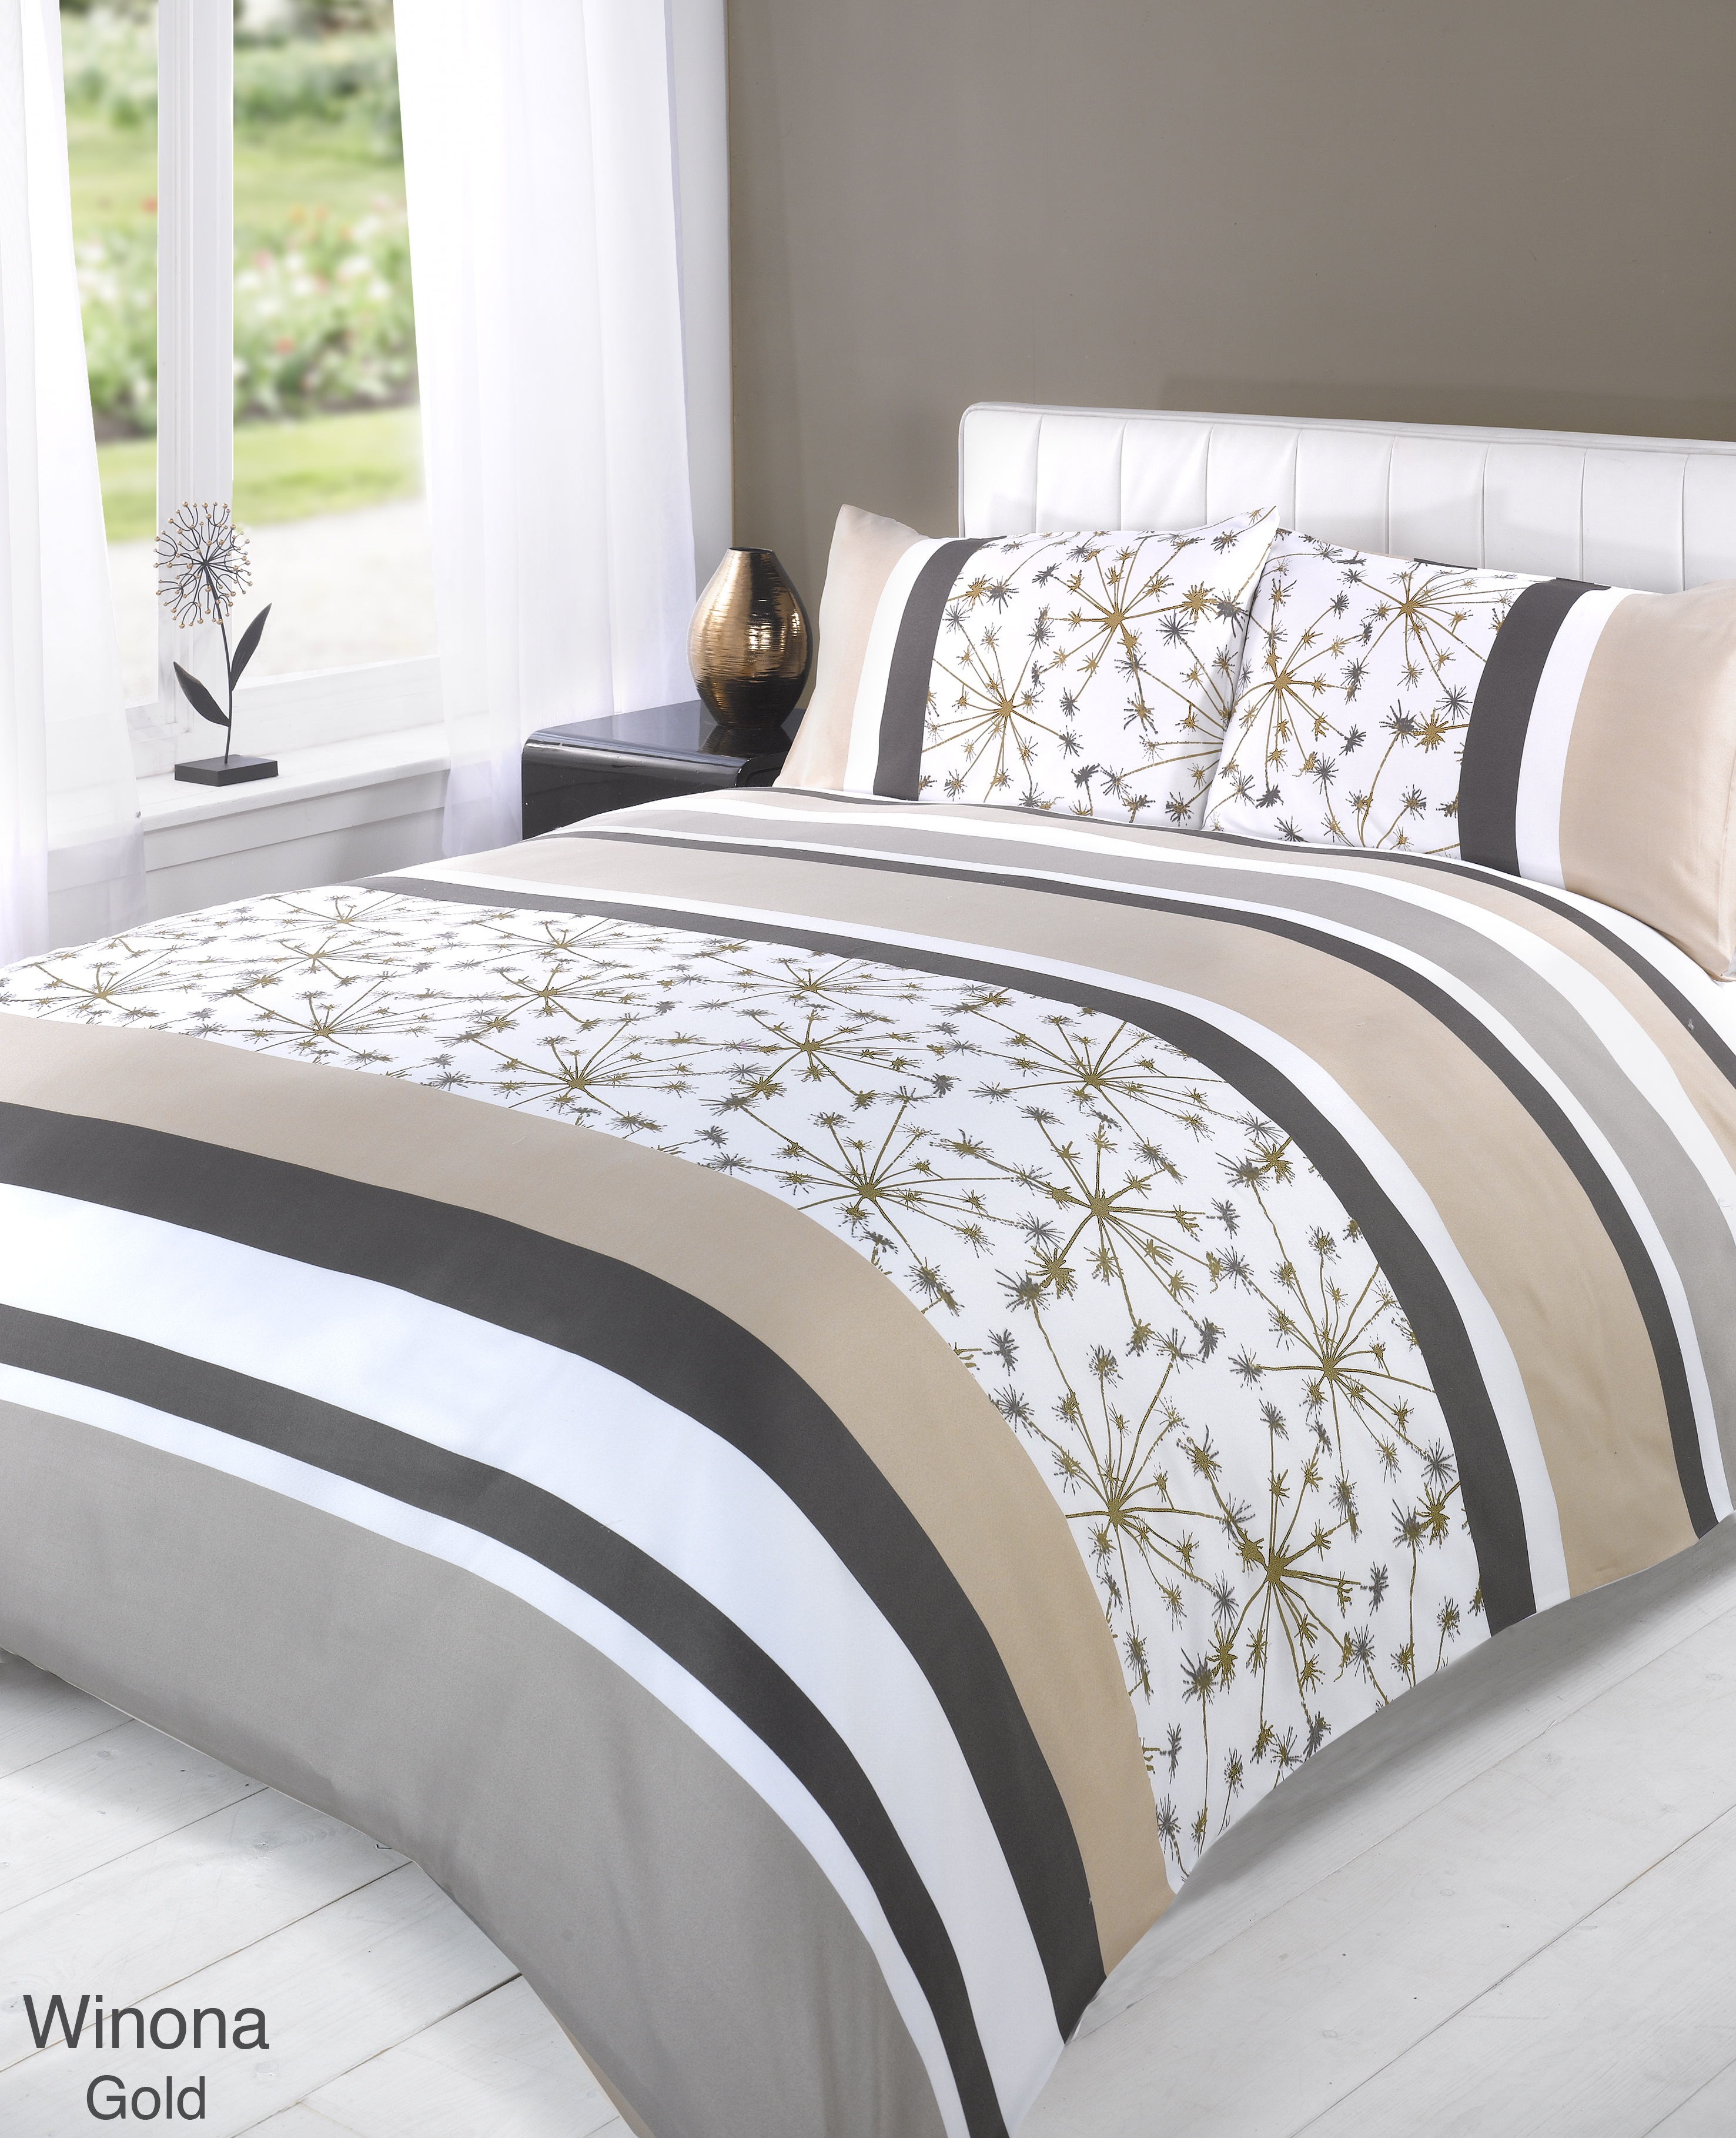 Choose from Single, Double, Queen, King and Super King quilt covers and quilt cover sets in the most beautiful and stylish designs. So, give your bedroom a new lease of life by choosing a quality quilt cover from My Linen.